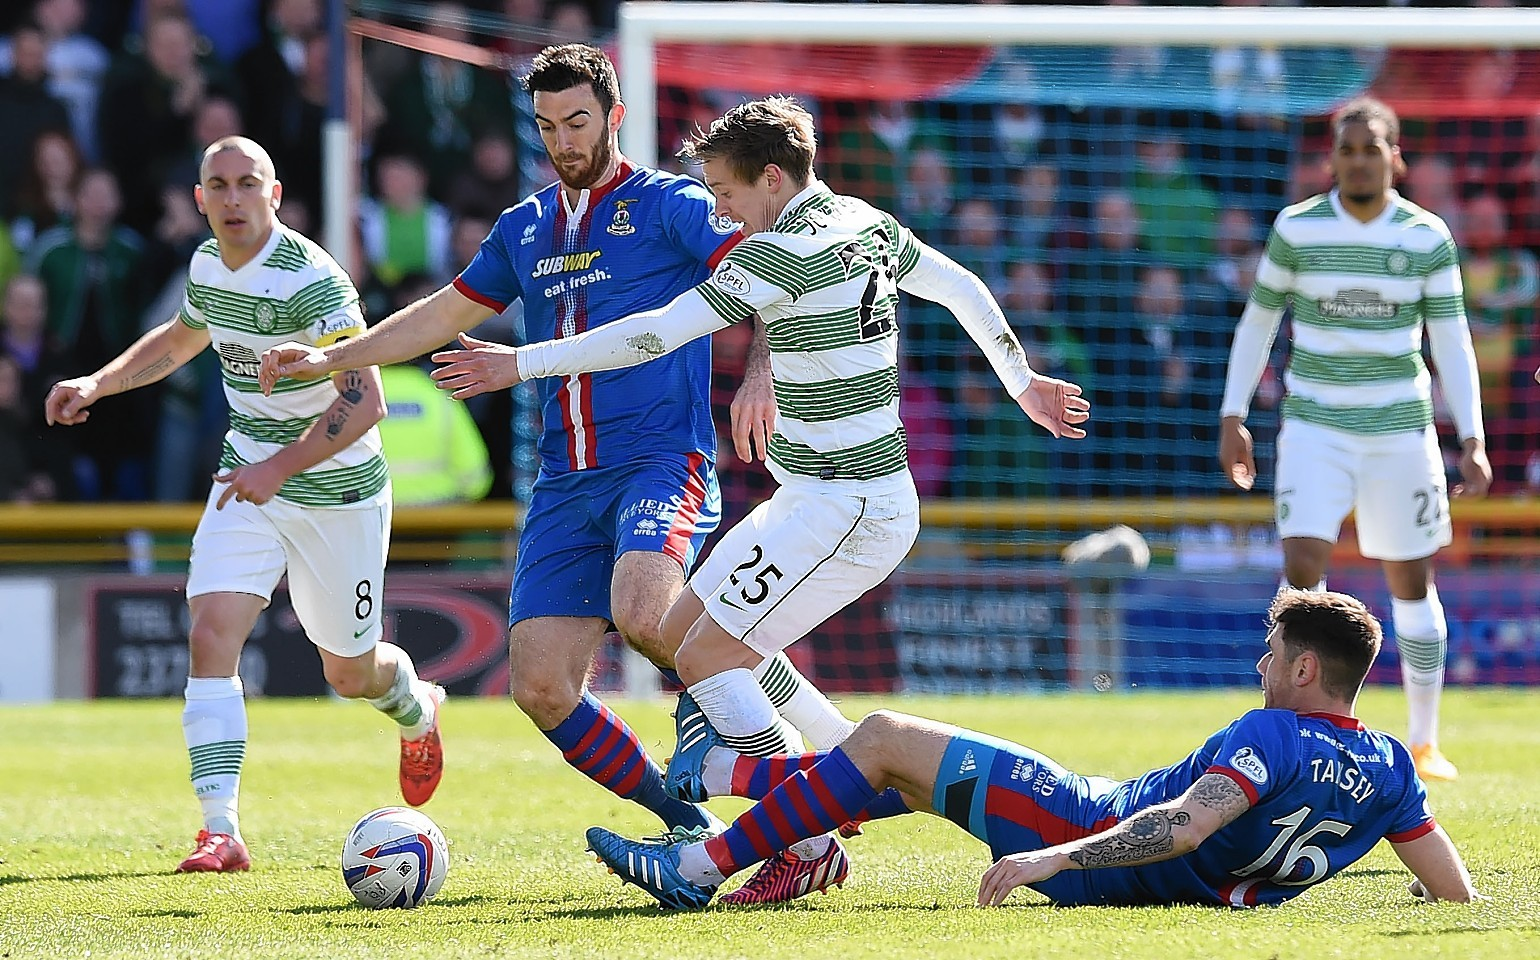 Celtic host Caley Thistle at Parkhead on Saturday, kicking off at 3pm.